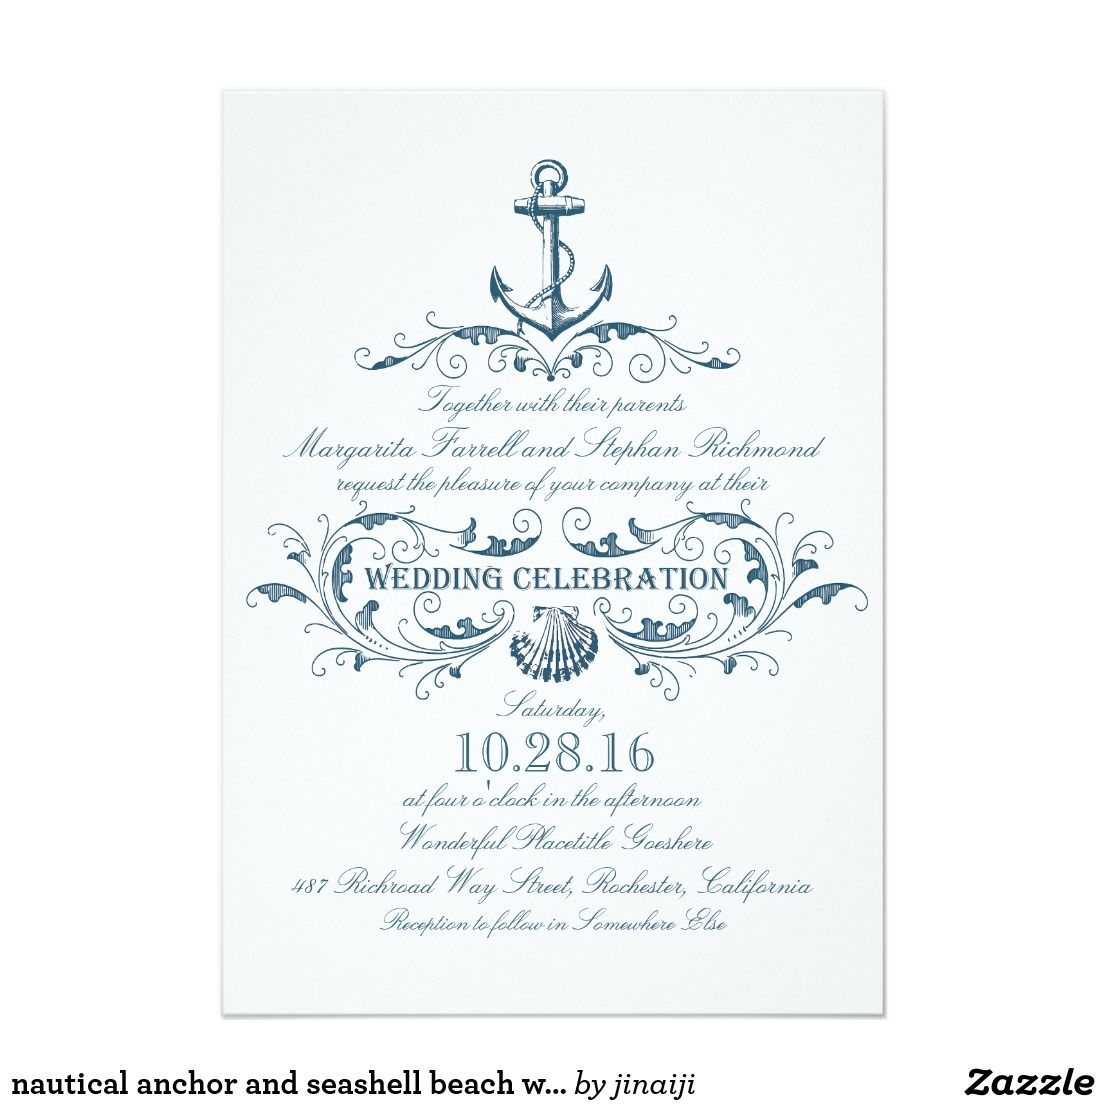 Nautical Anchor And Seashell Beach Wedding Invites Beach Wedding